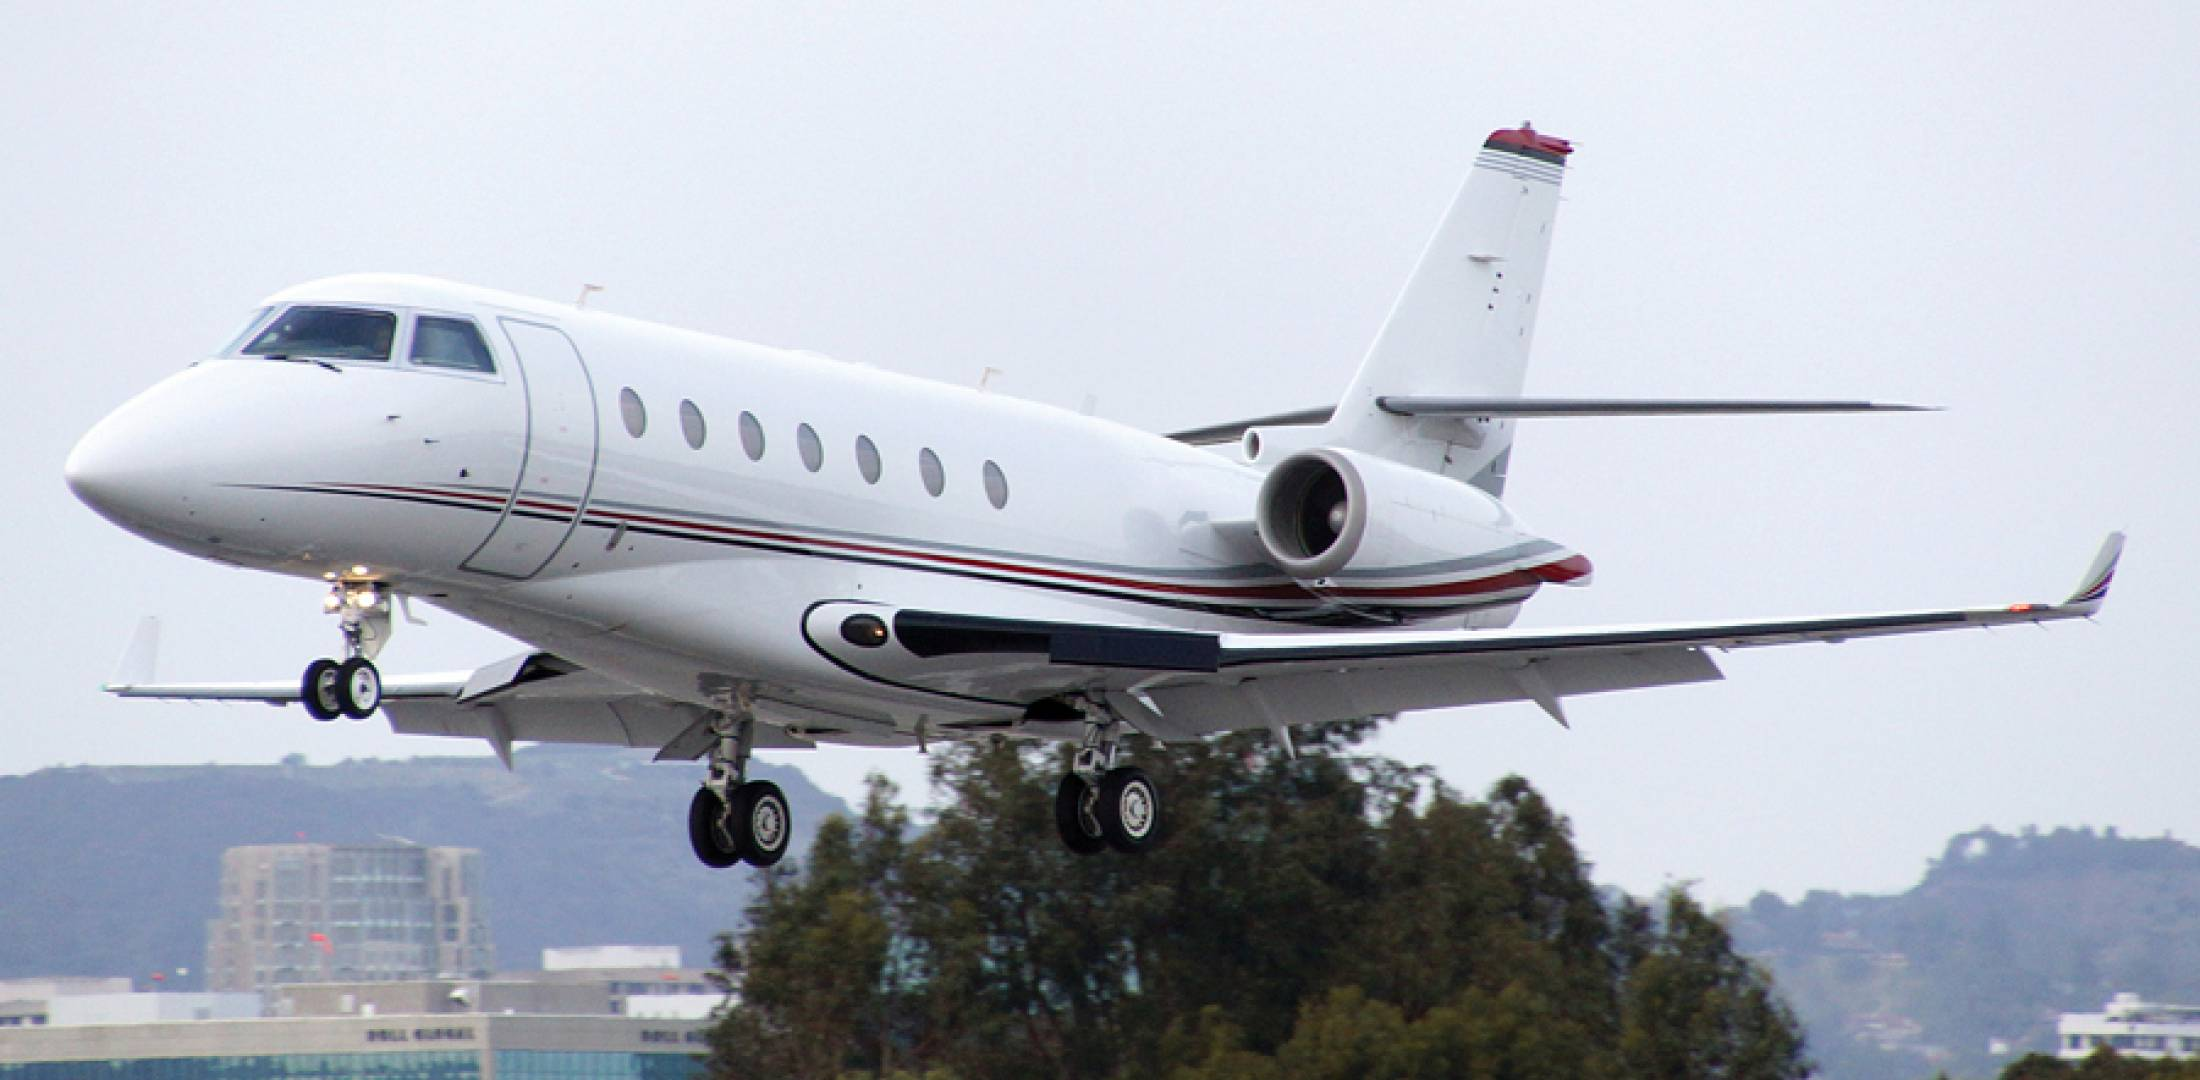 Santa Monica City Council Votes On Plan To Restrict Aviation At Smo